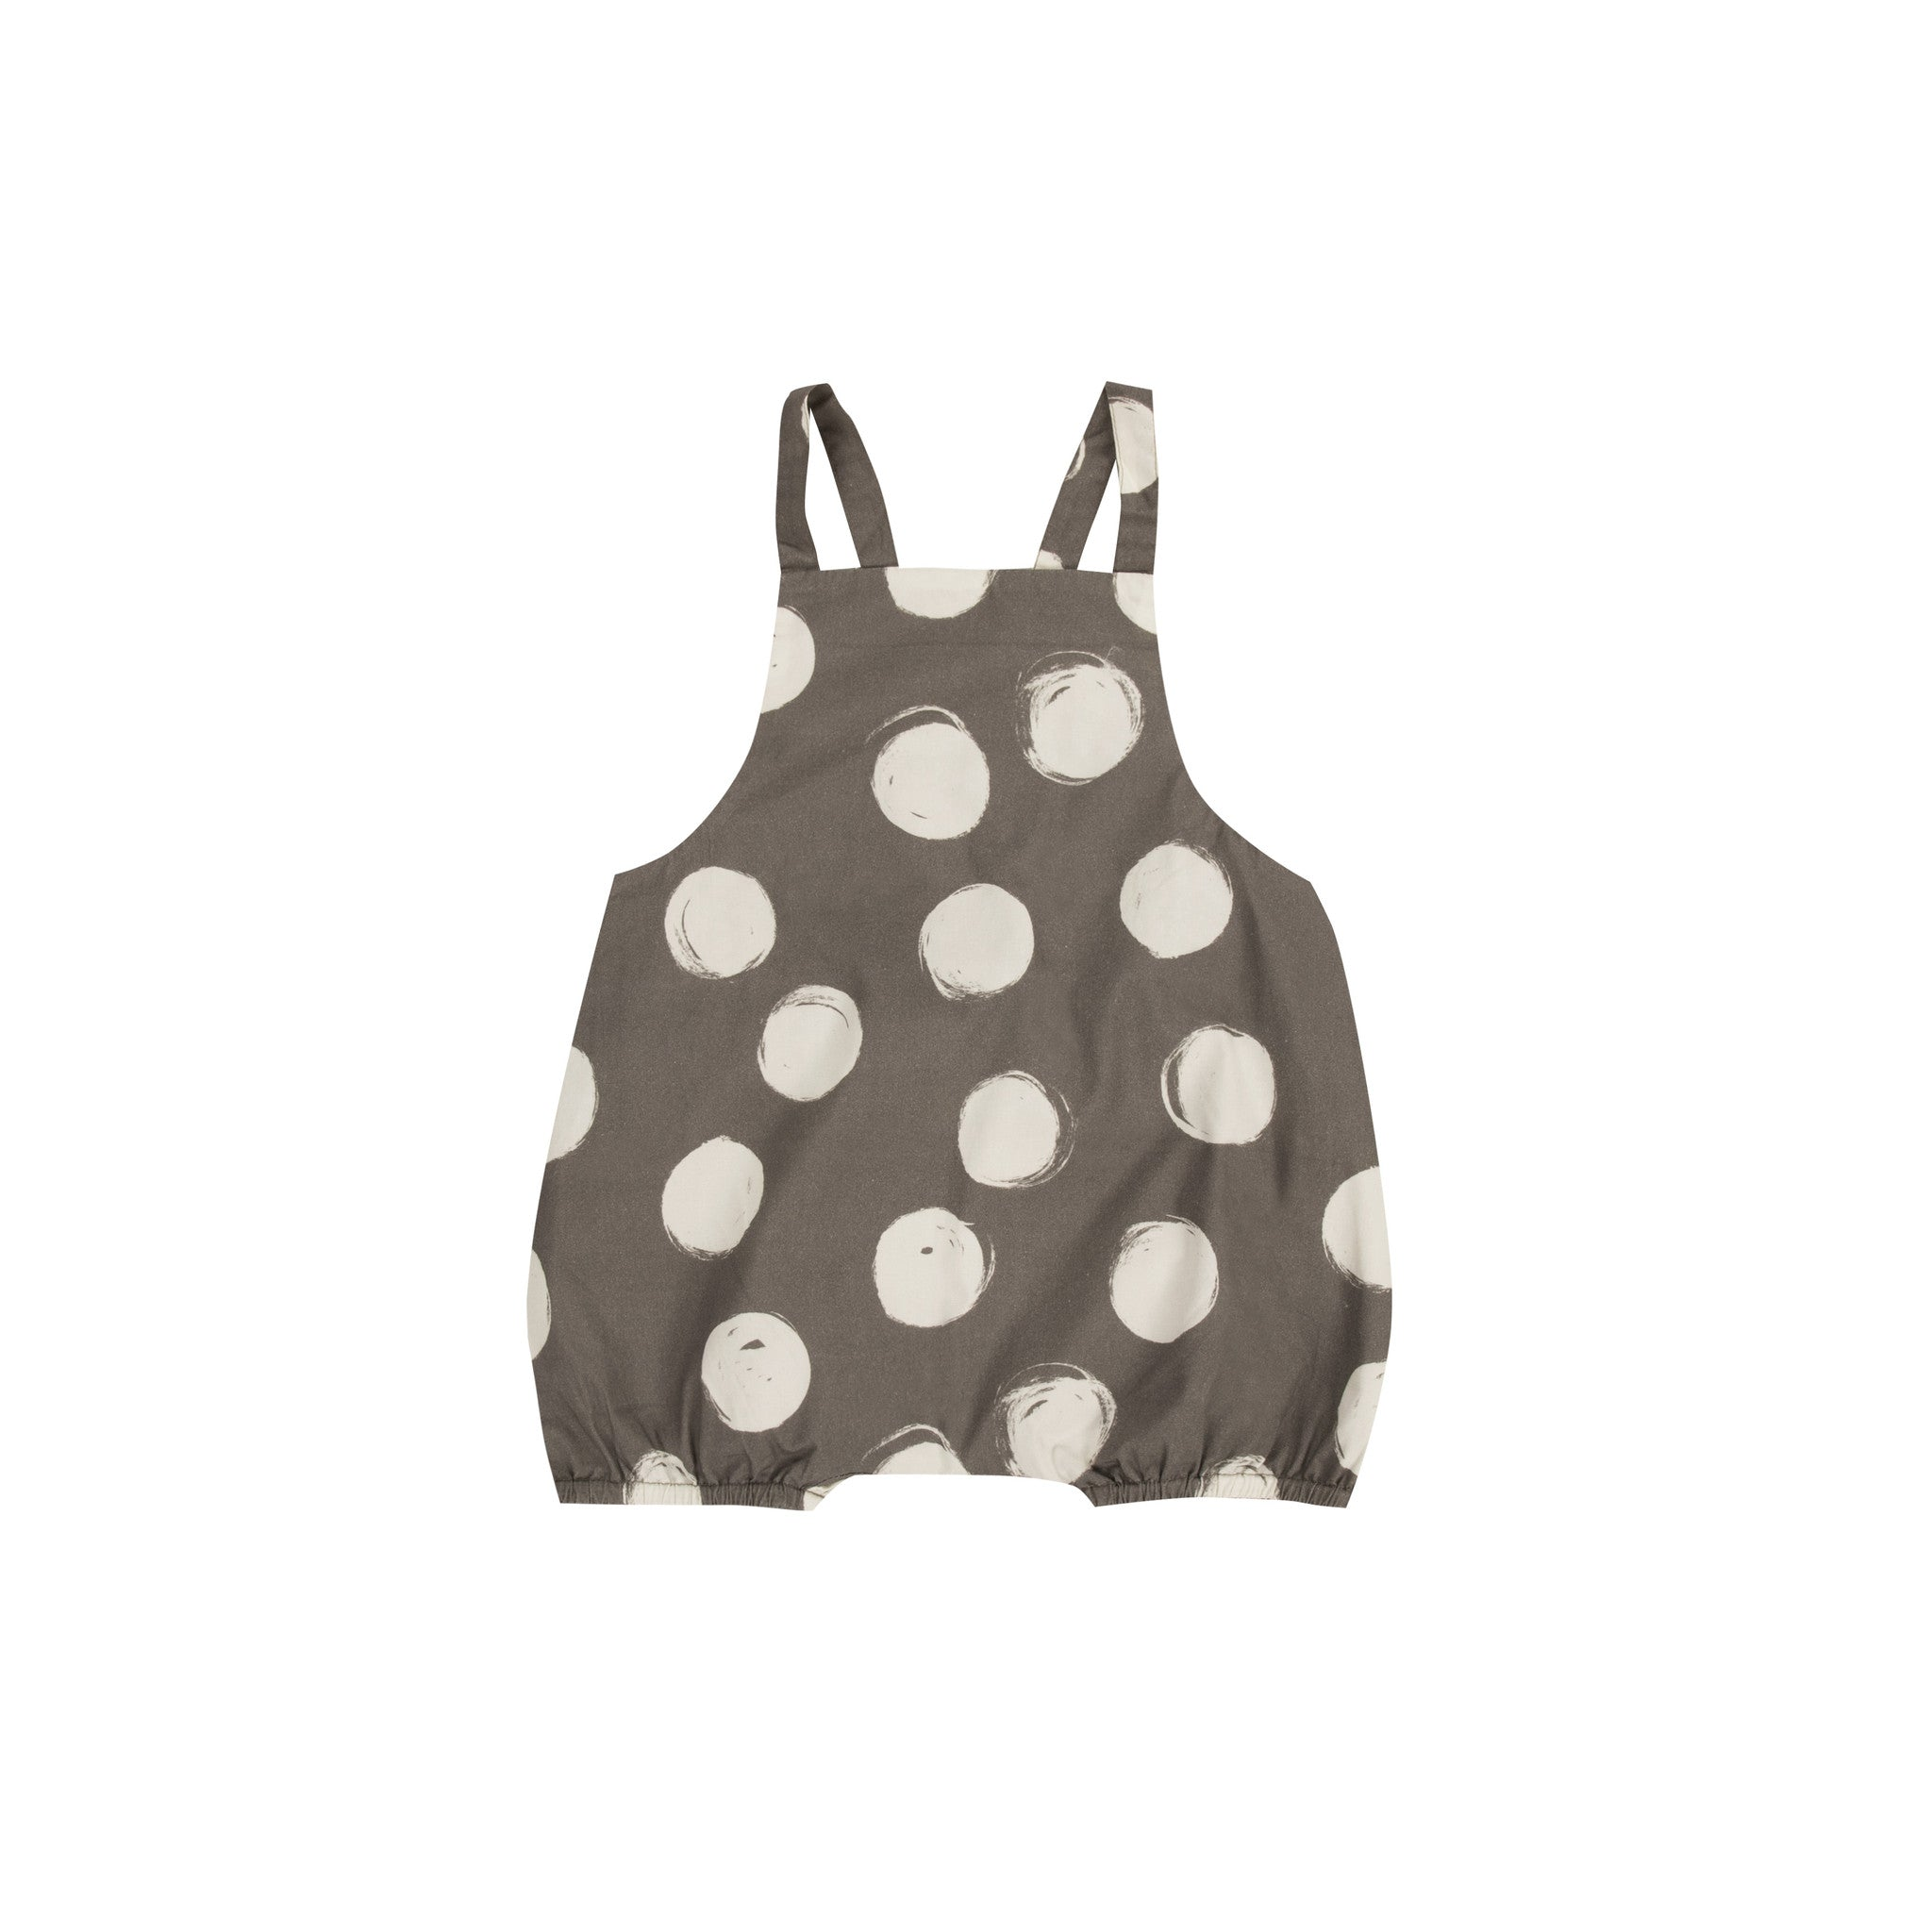 Big dots romper by Rylee and Cru at Bonjour Baby Baskets